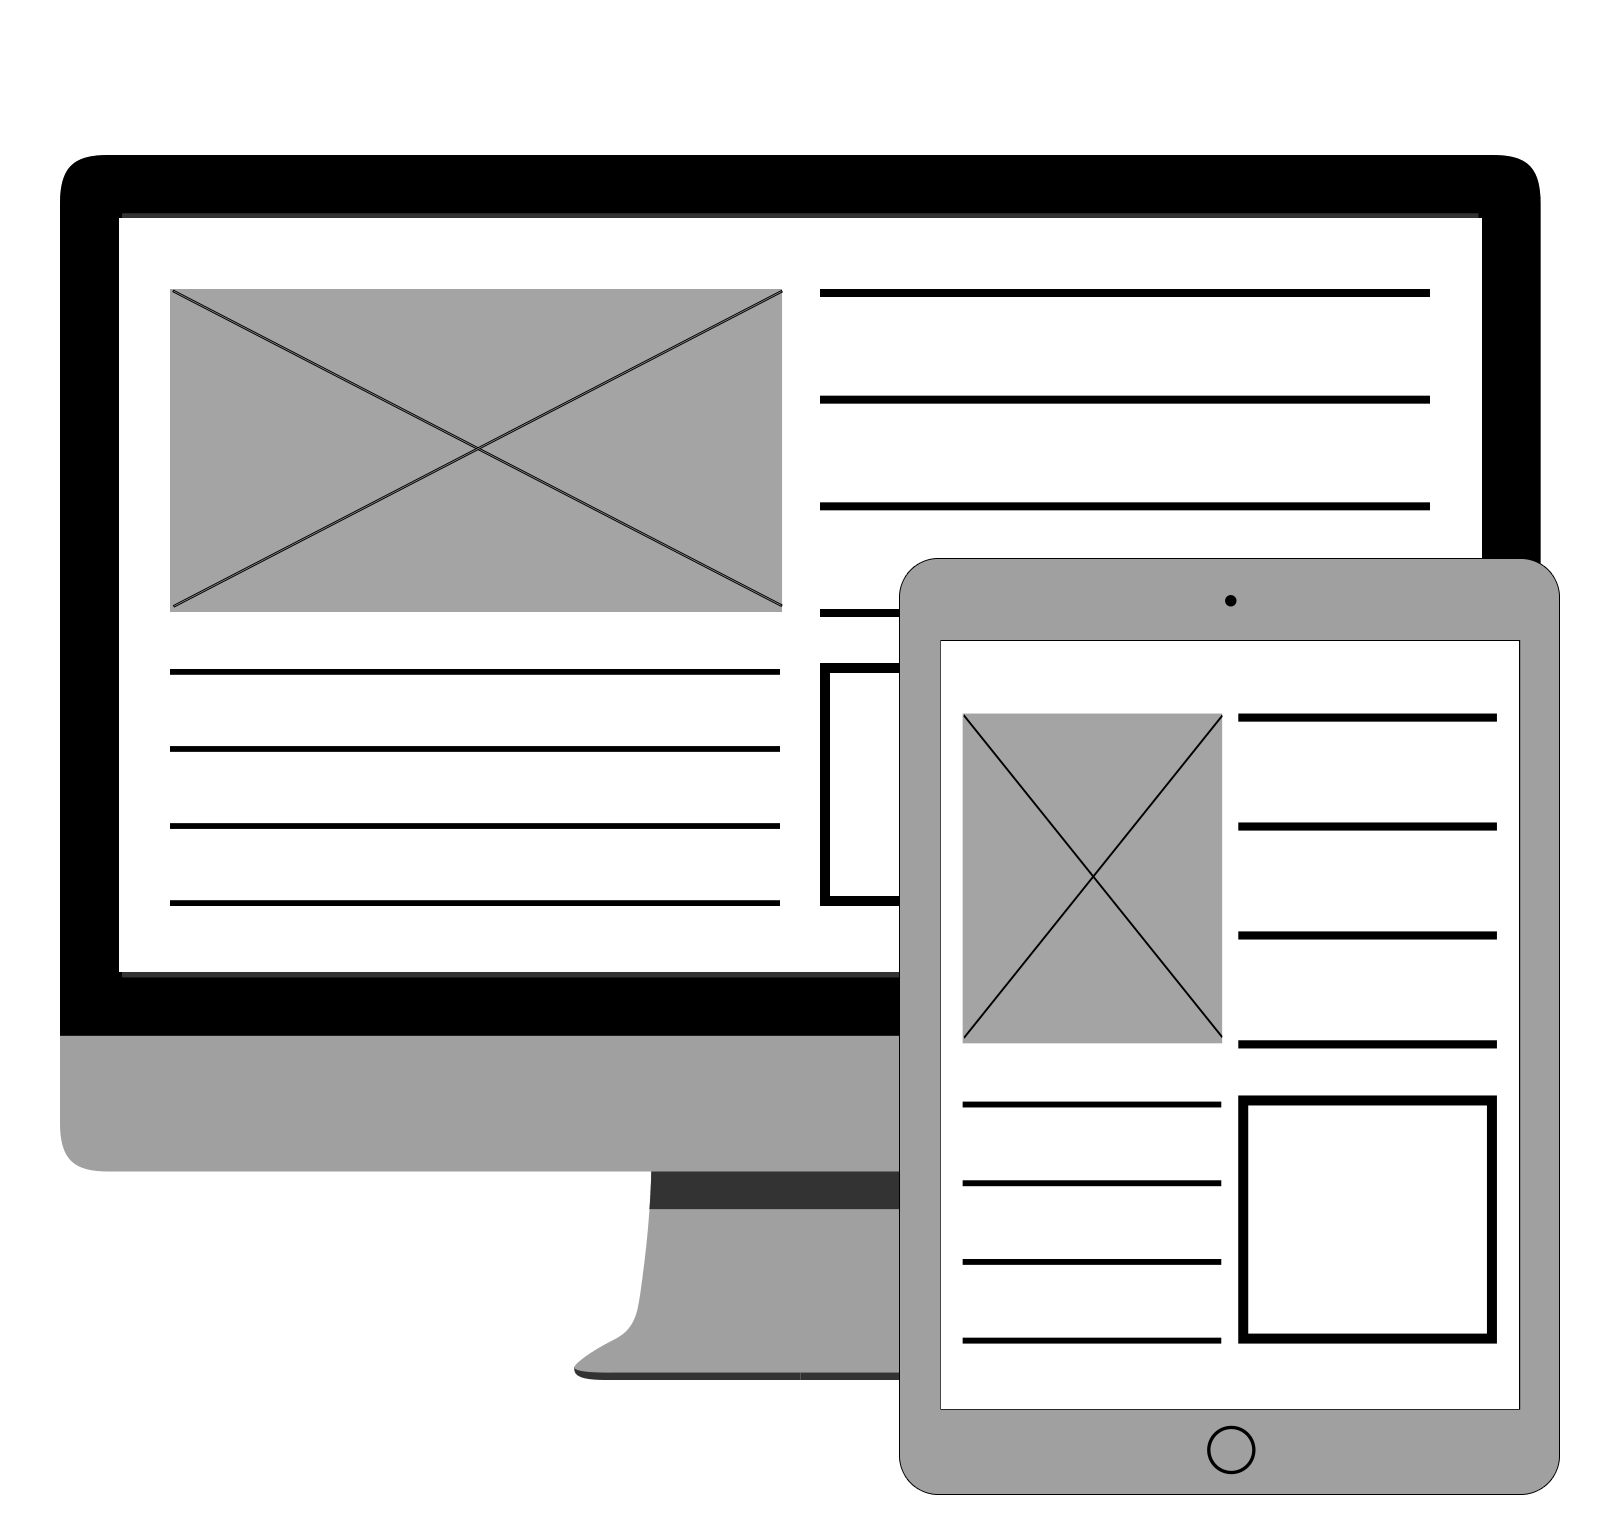 GraphicMail: Example of a wireframe